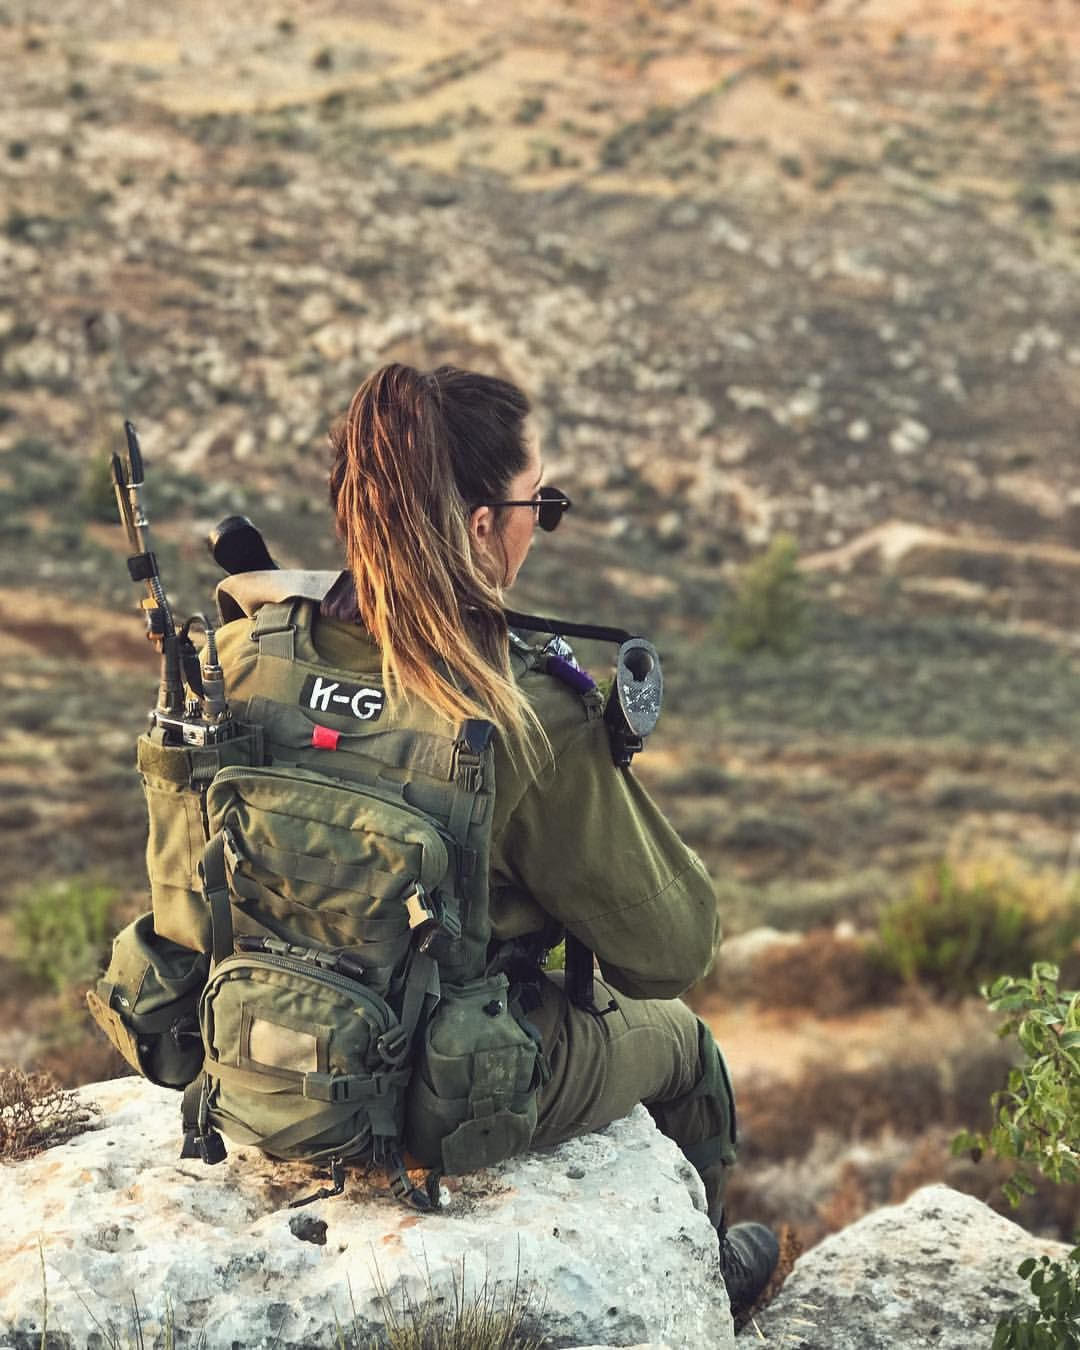 IDF Girl Soldier | Military girl, Female soldier, Military women